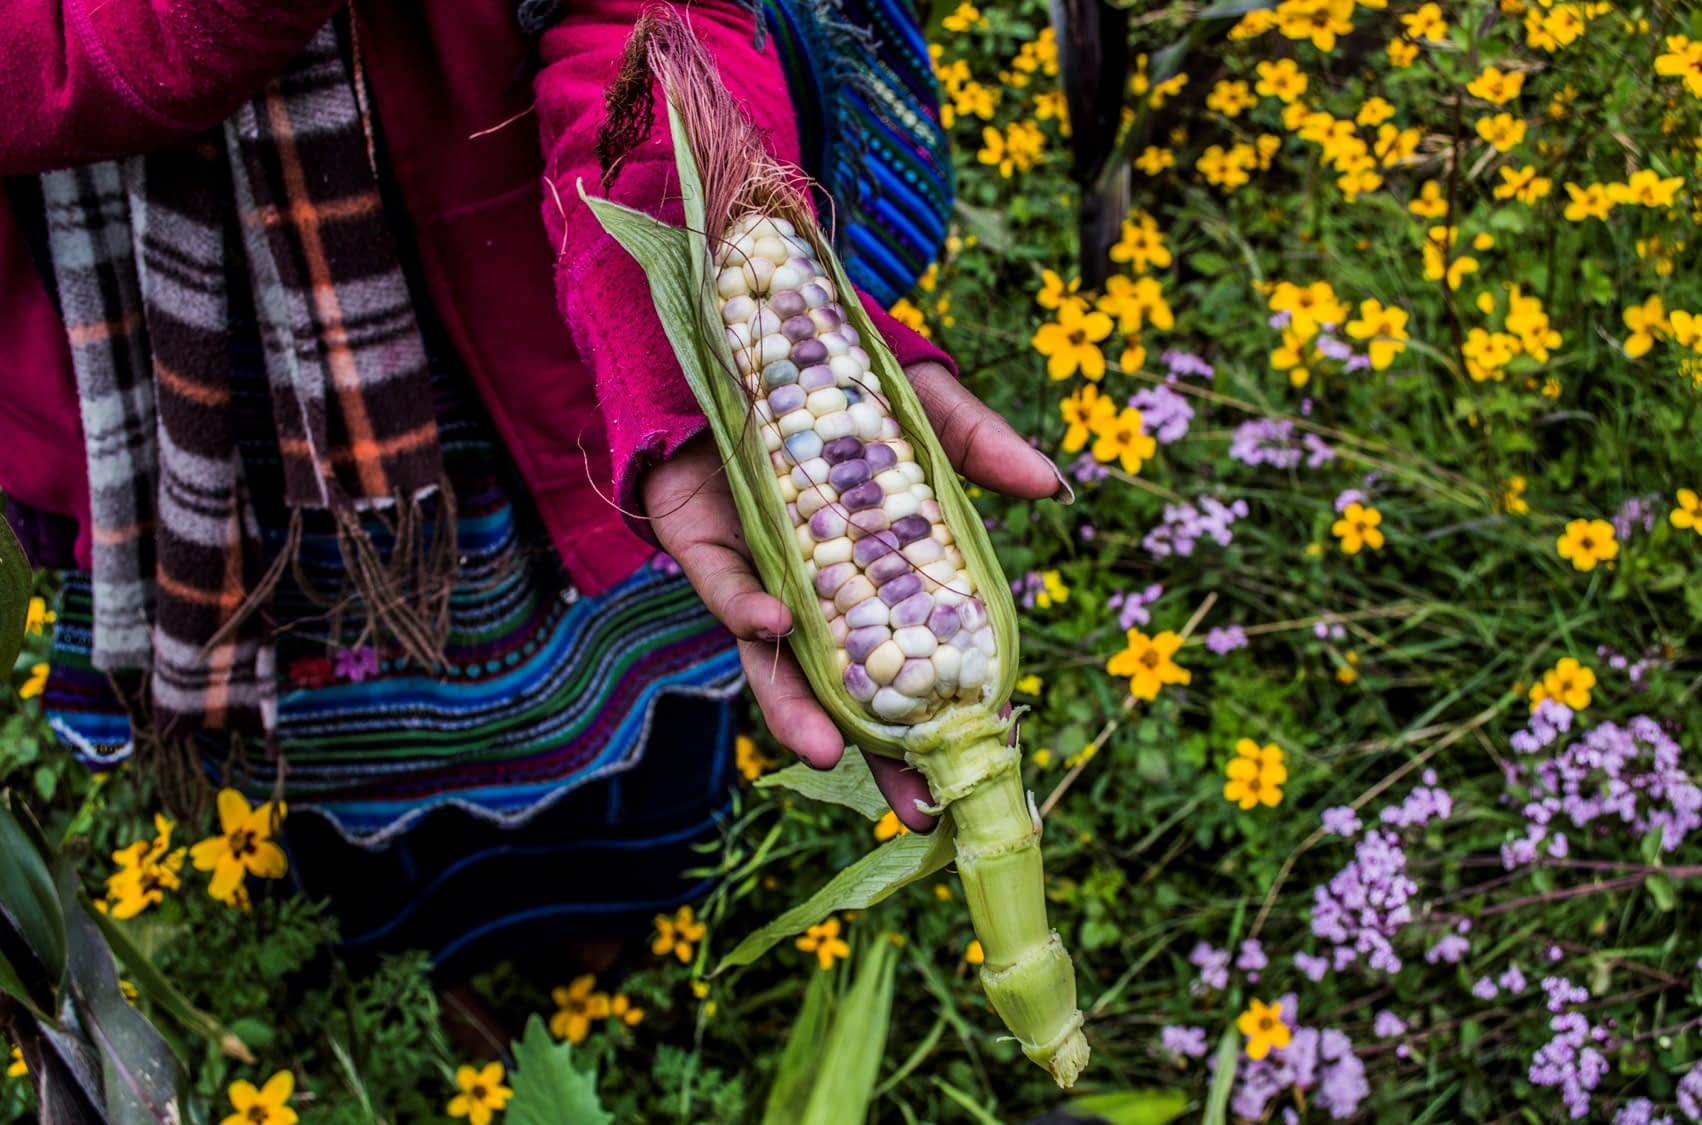 A farmer holds a maize ear. (Photo: Cristian Reyna)